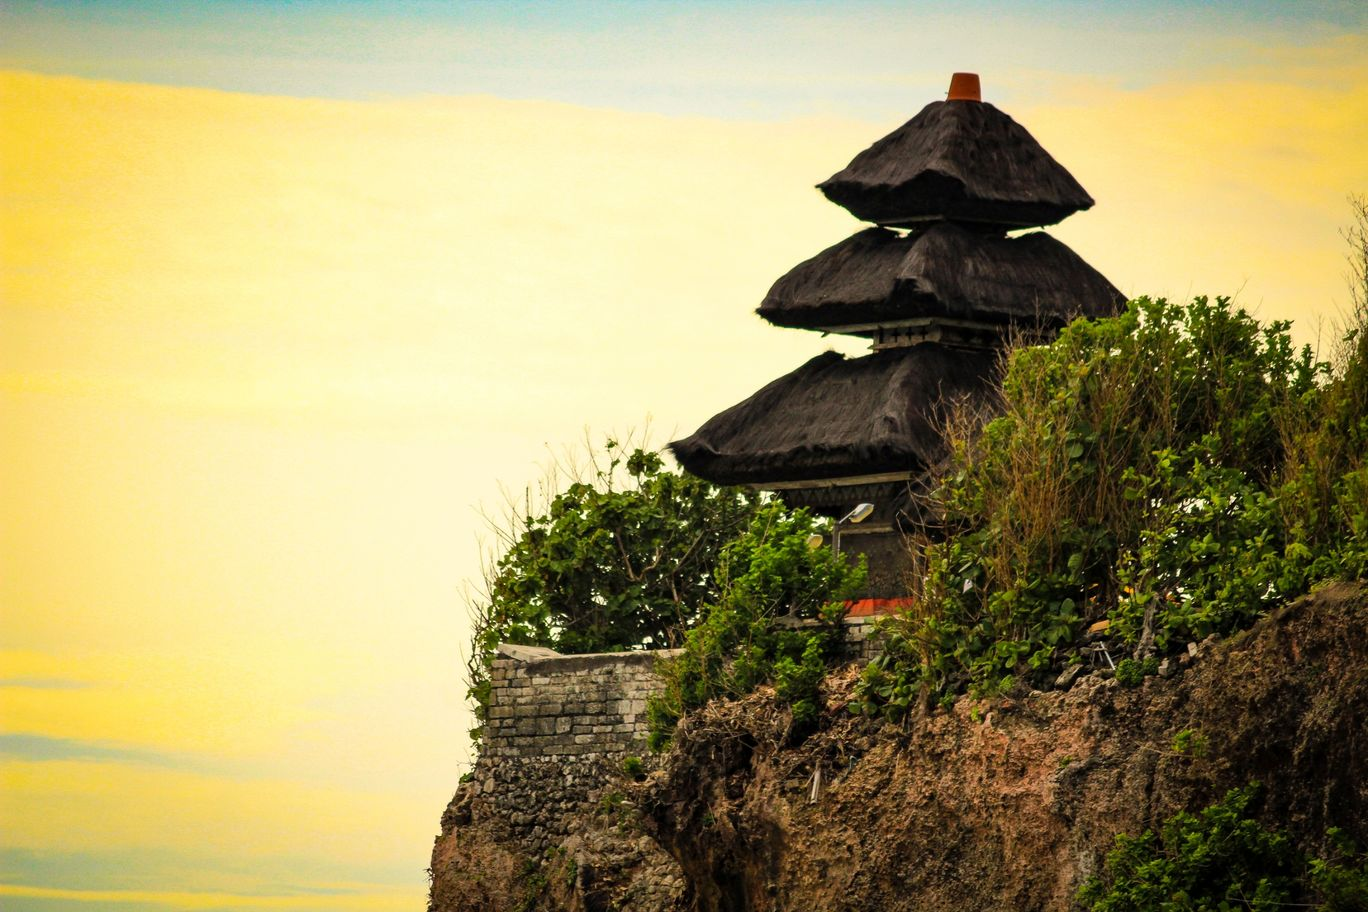 Photo of Bali By Harshit Taunk